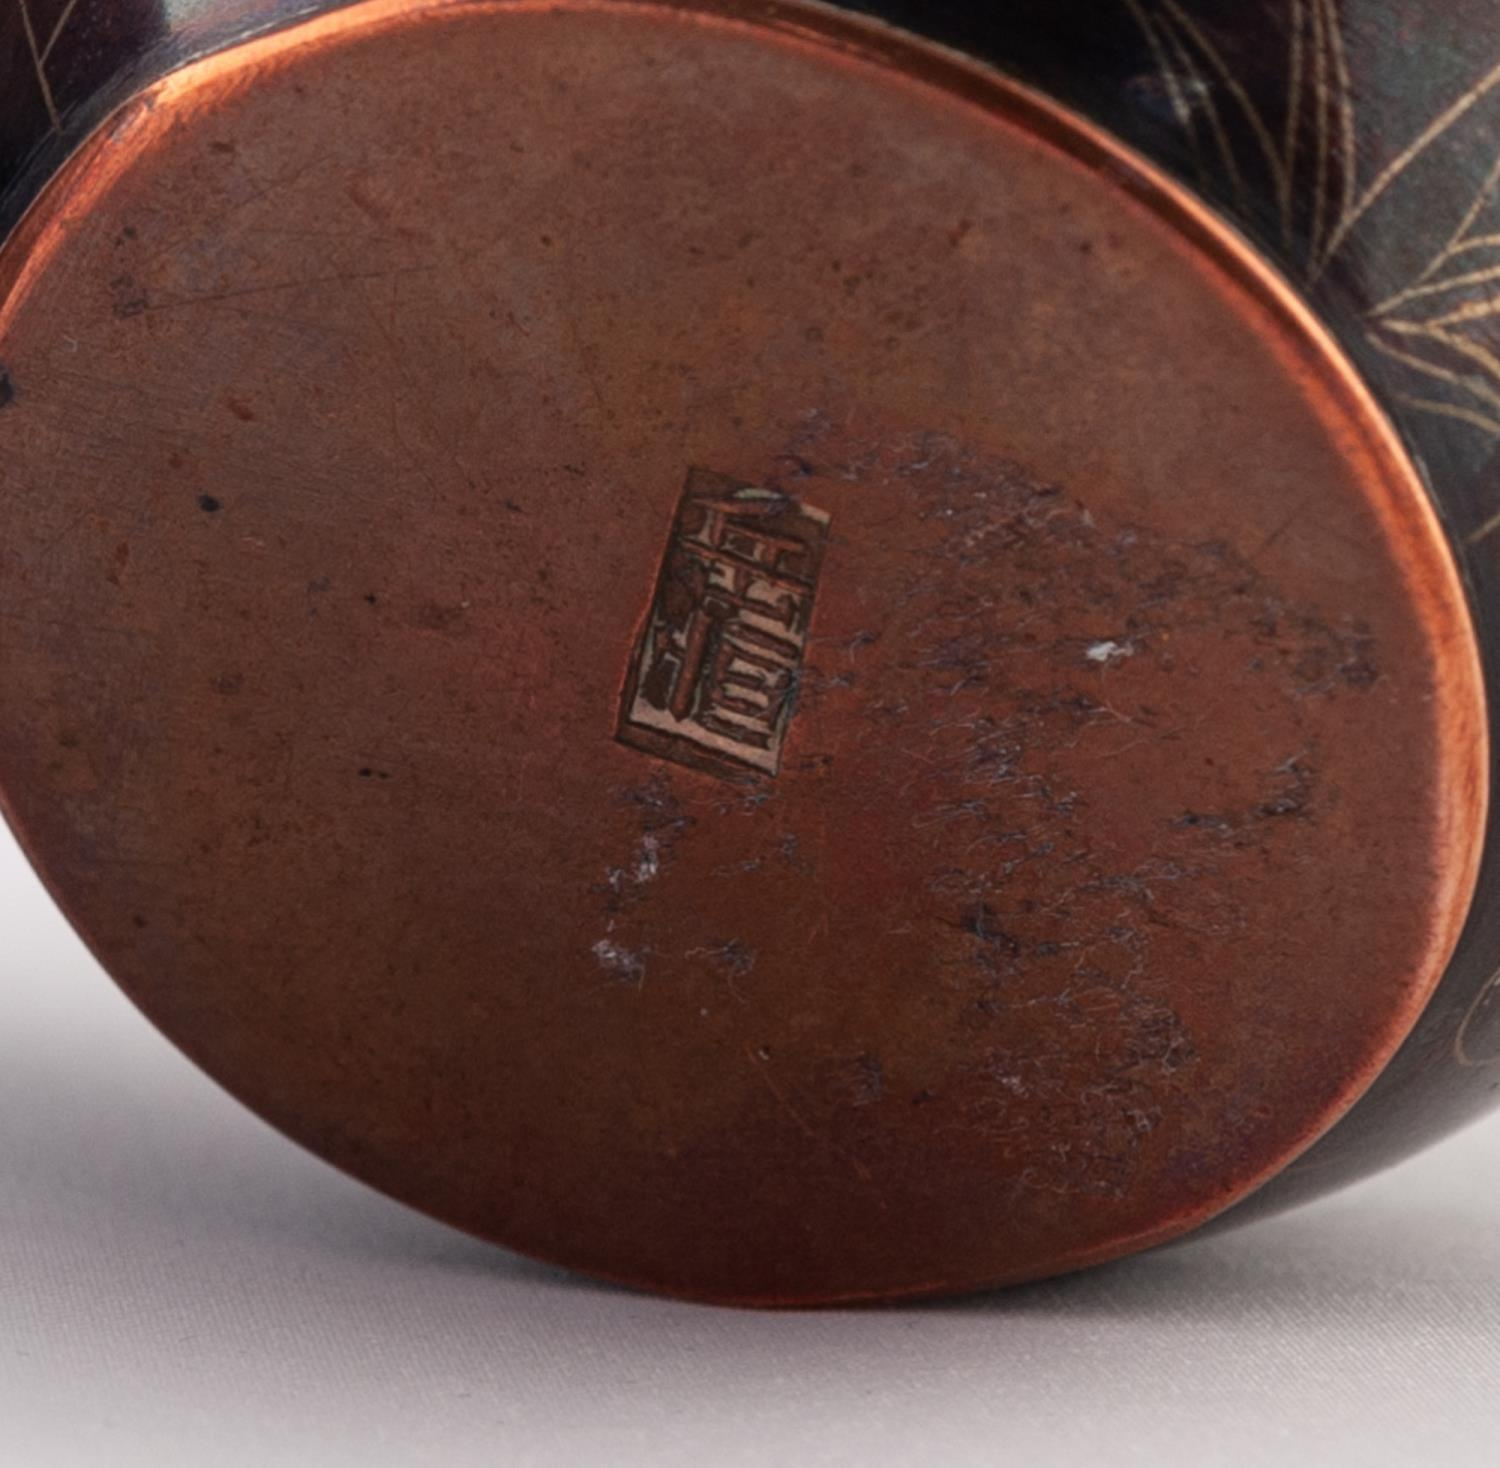 Lot 36 - A GOOD QUALITY PAIR OF SMALL JAPANESE MEIJI PERIOD COPPER ALLOY SMALL BOWLS, the patinated bodies